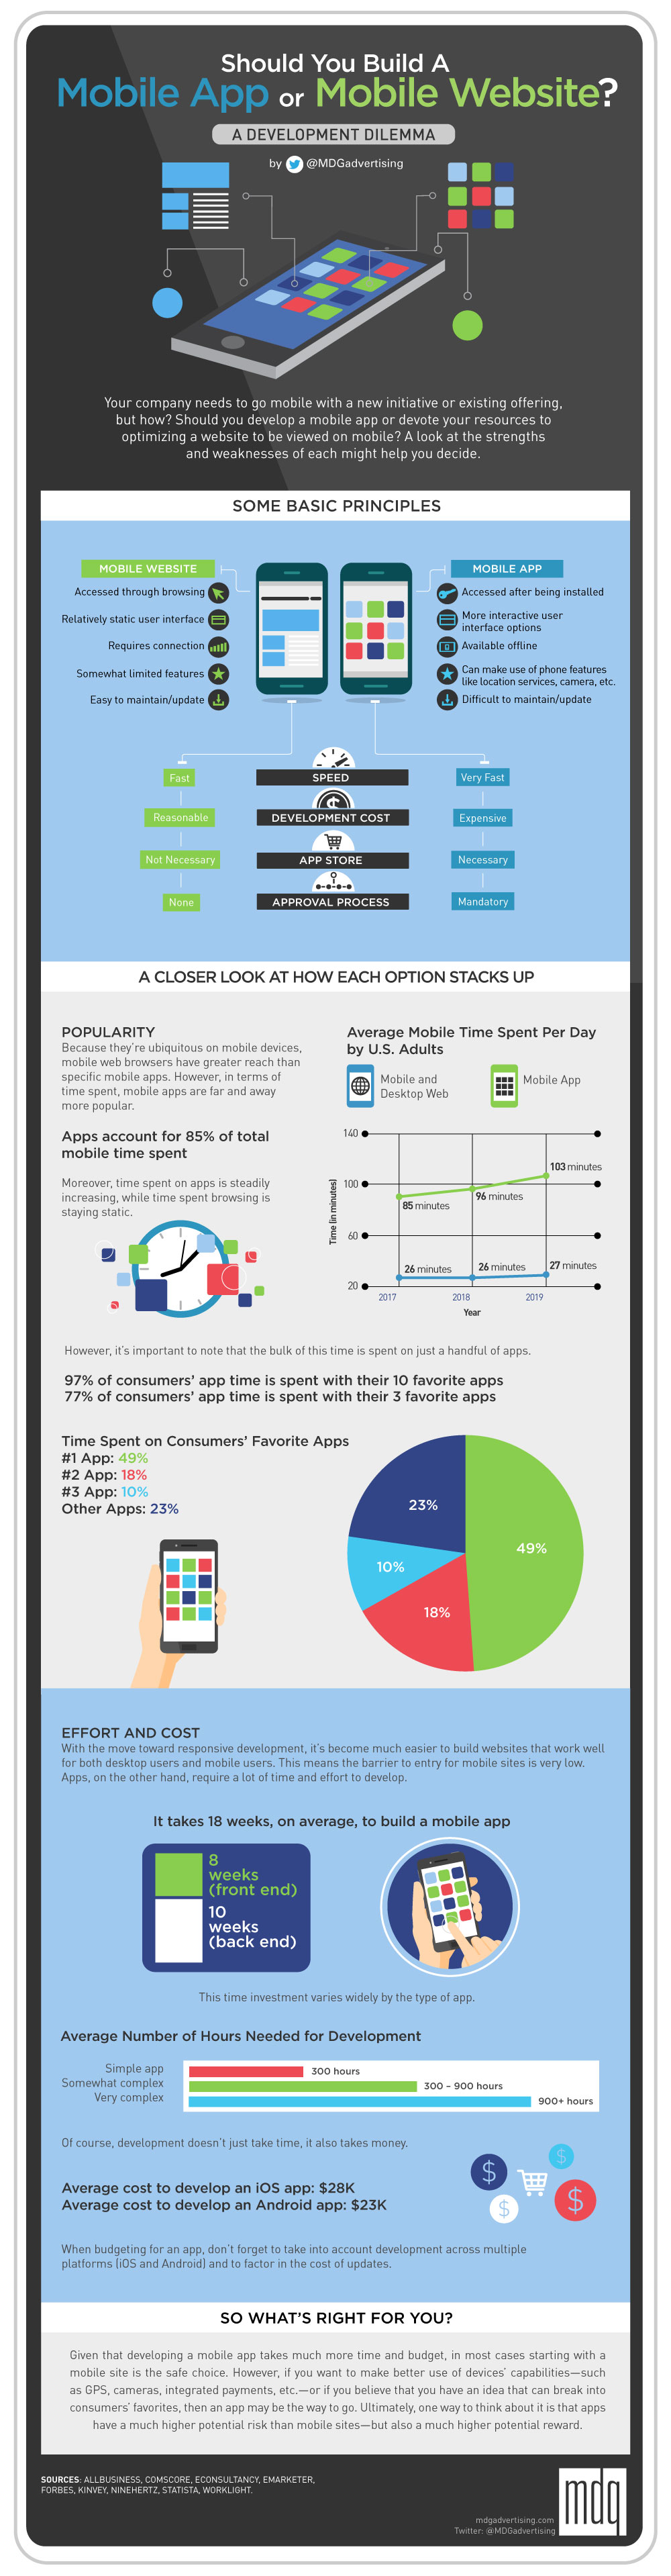 Should You Build a Mobile App or Mobile Website? [Infographic]